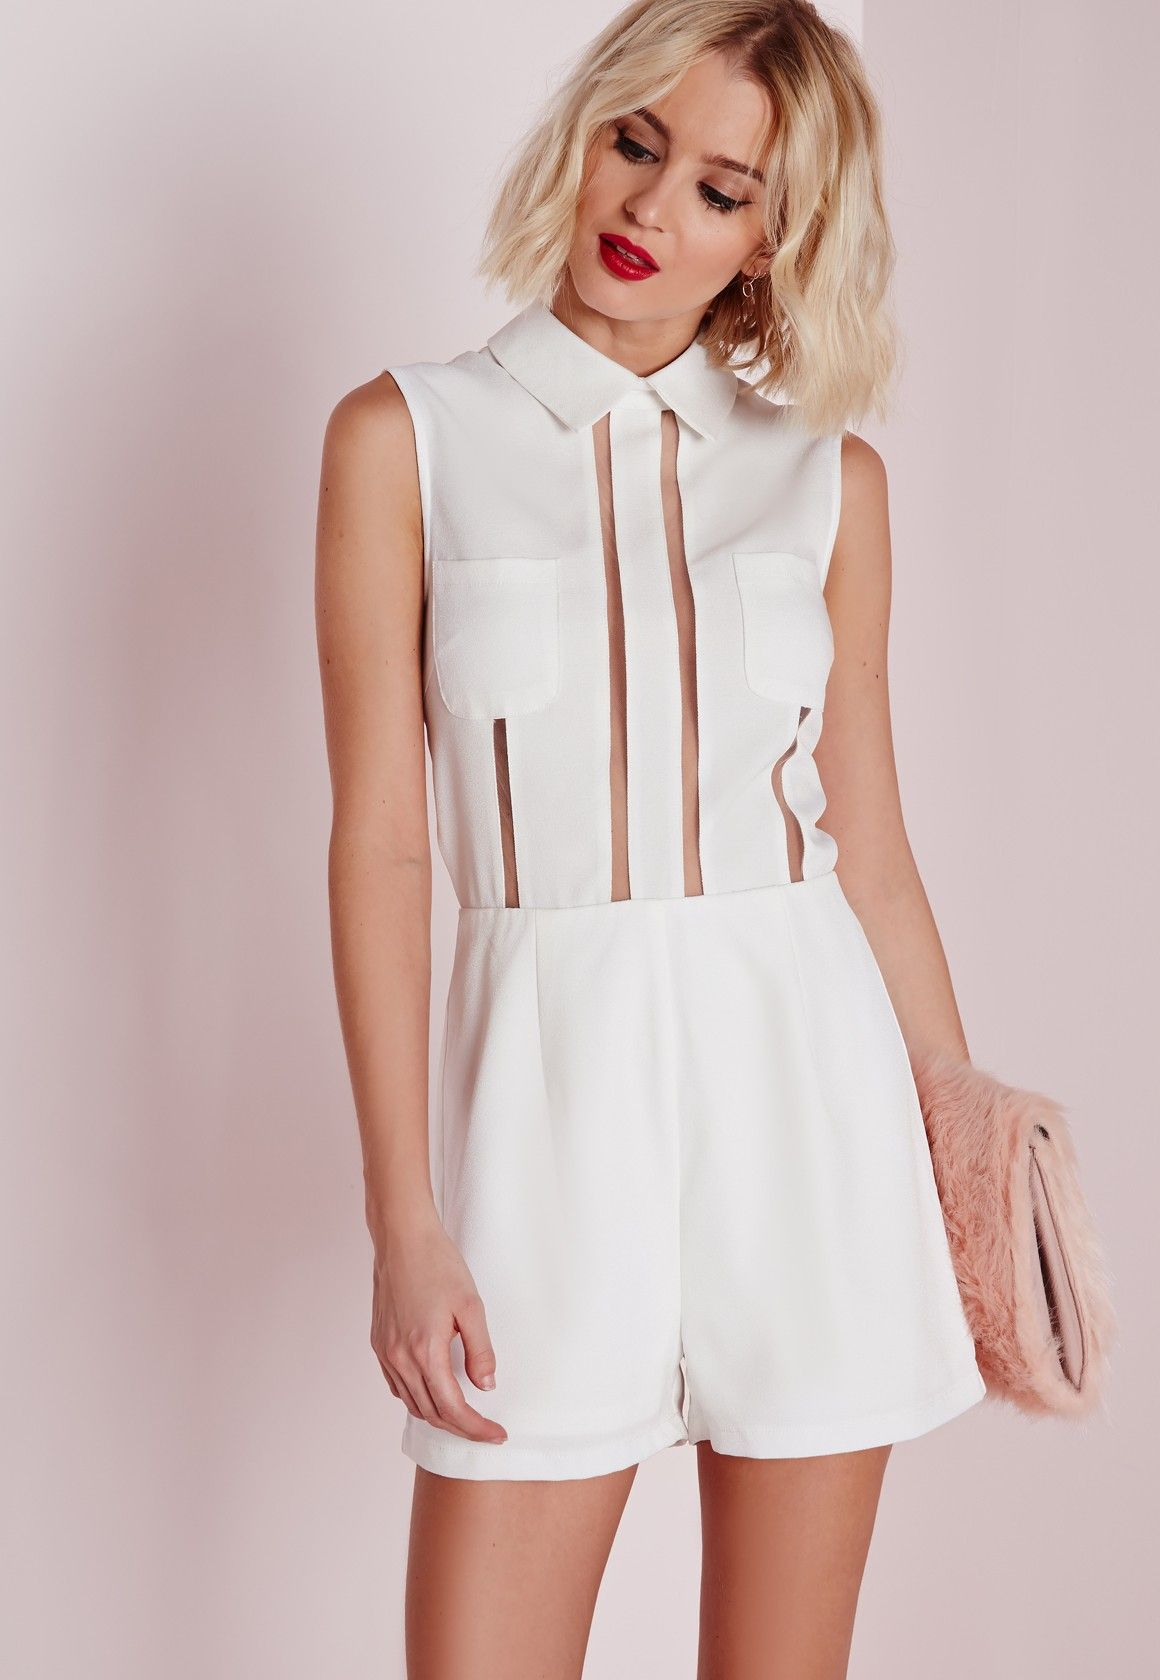 60f4b421091 Missguided - Mesh Stripe Collared Playsuit White